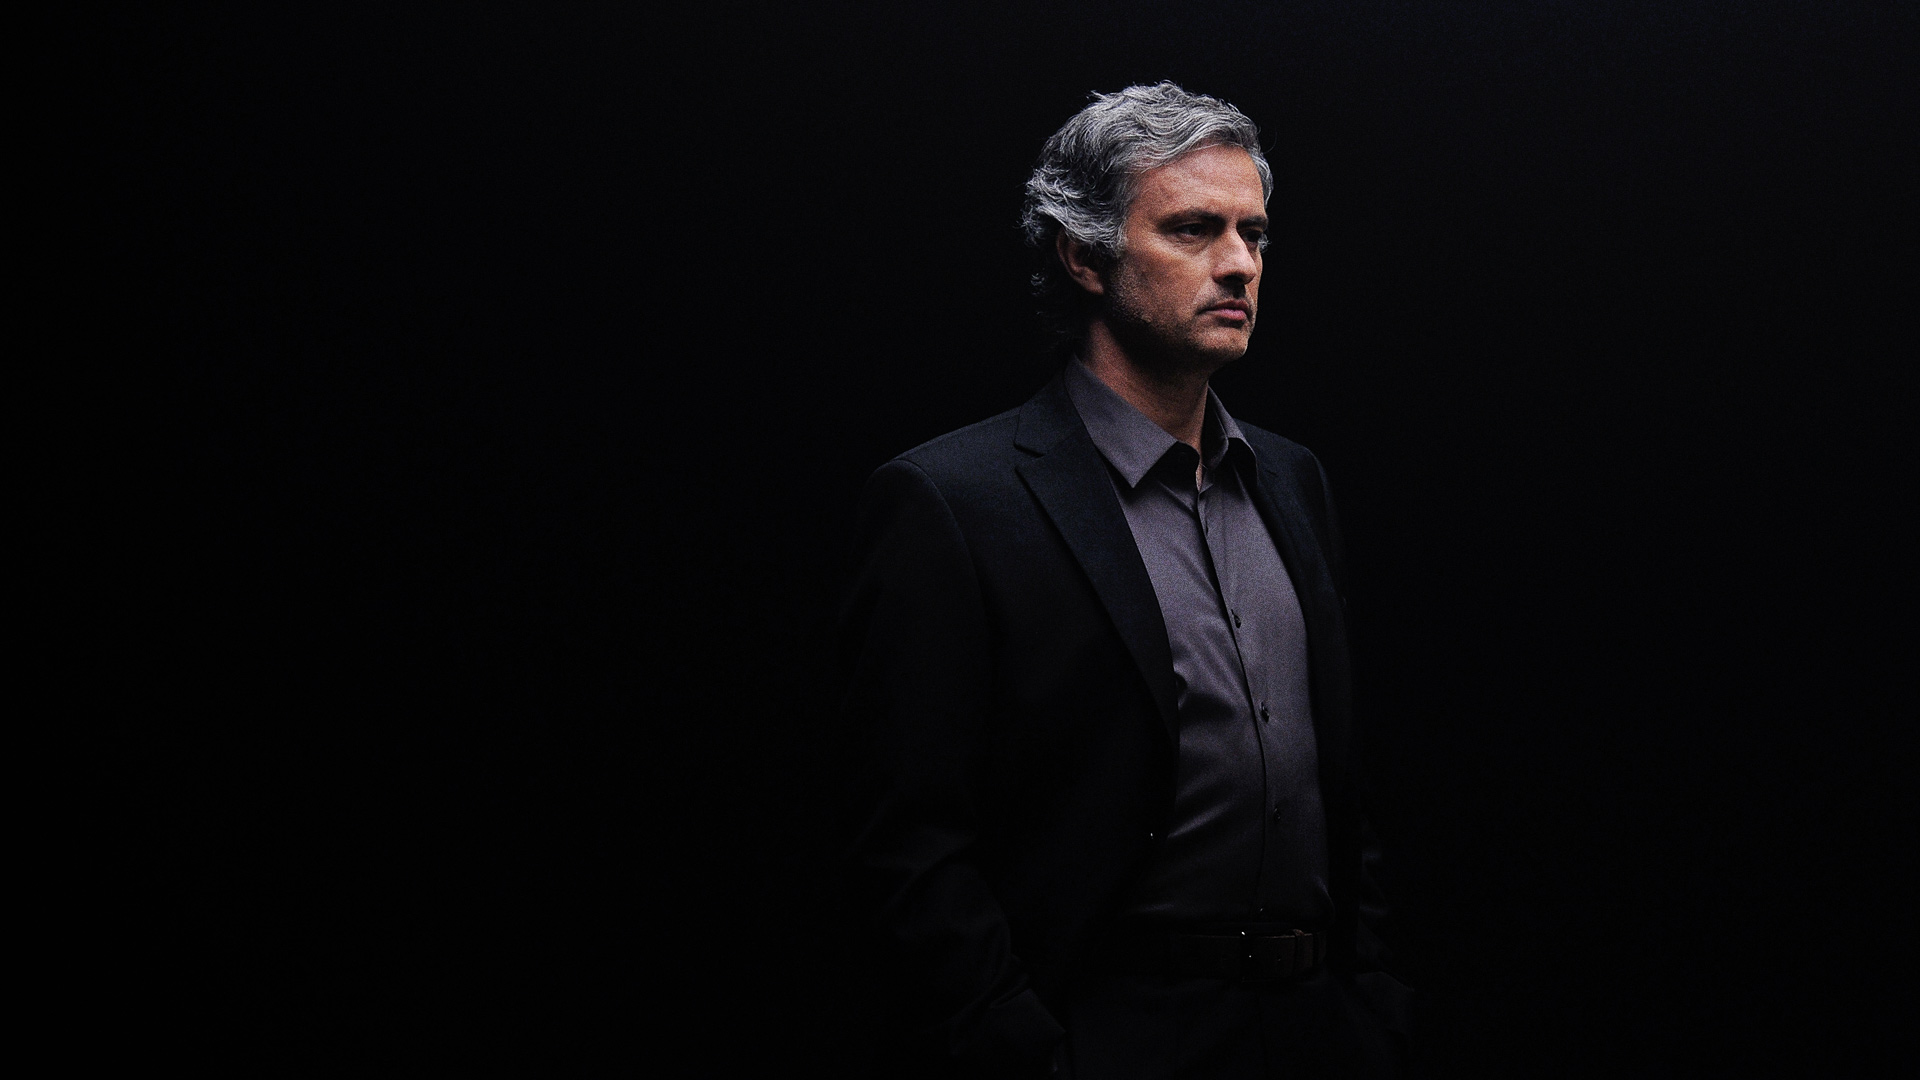 Jose Mourinho 20152016 Manager Wallpaper   Football Wallpapers HD 1920x1080